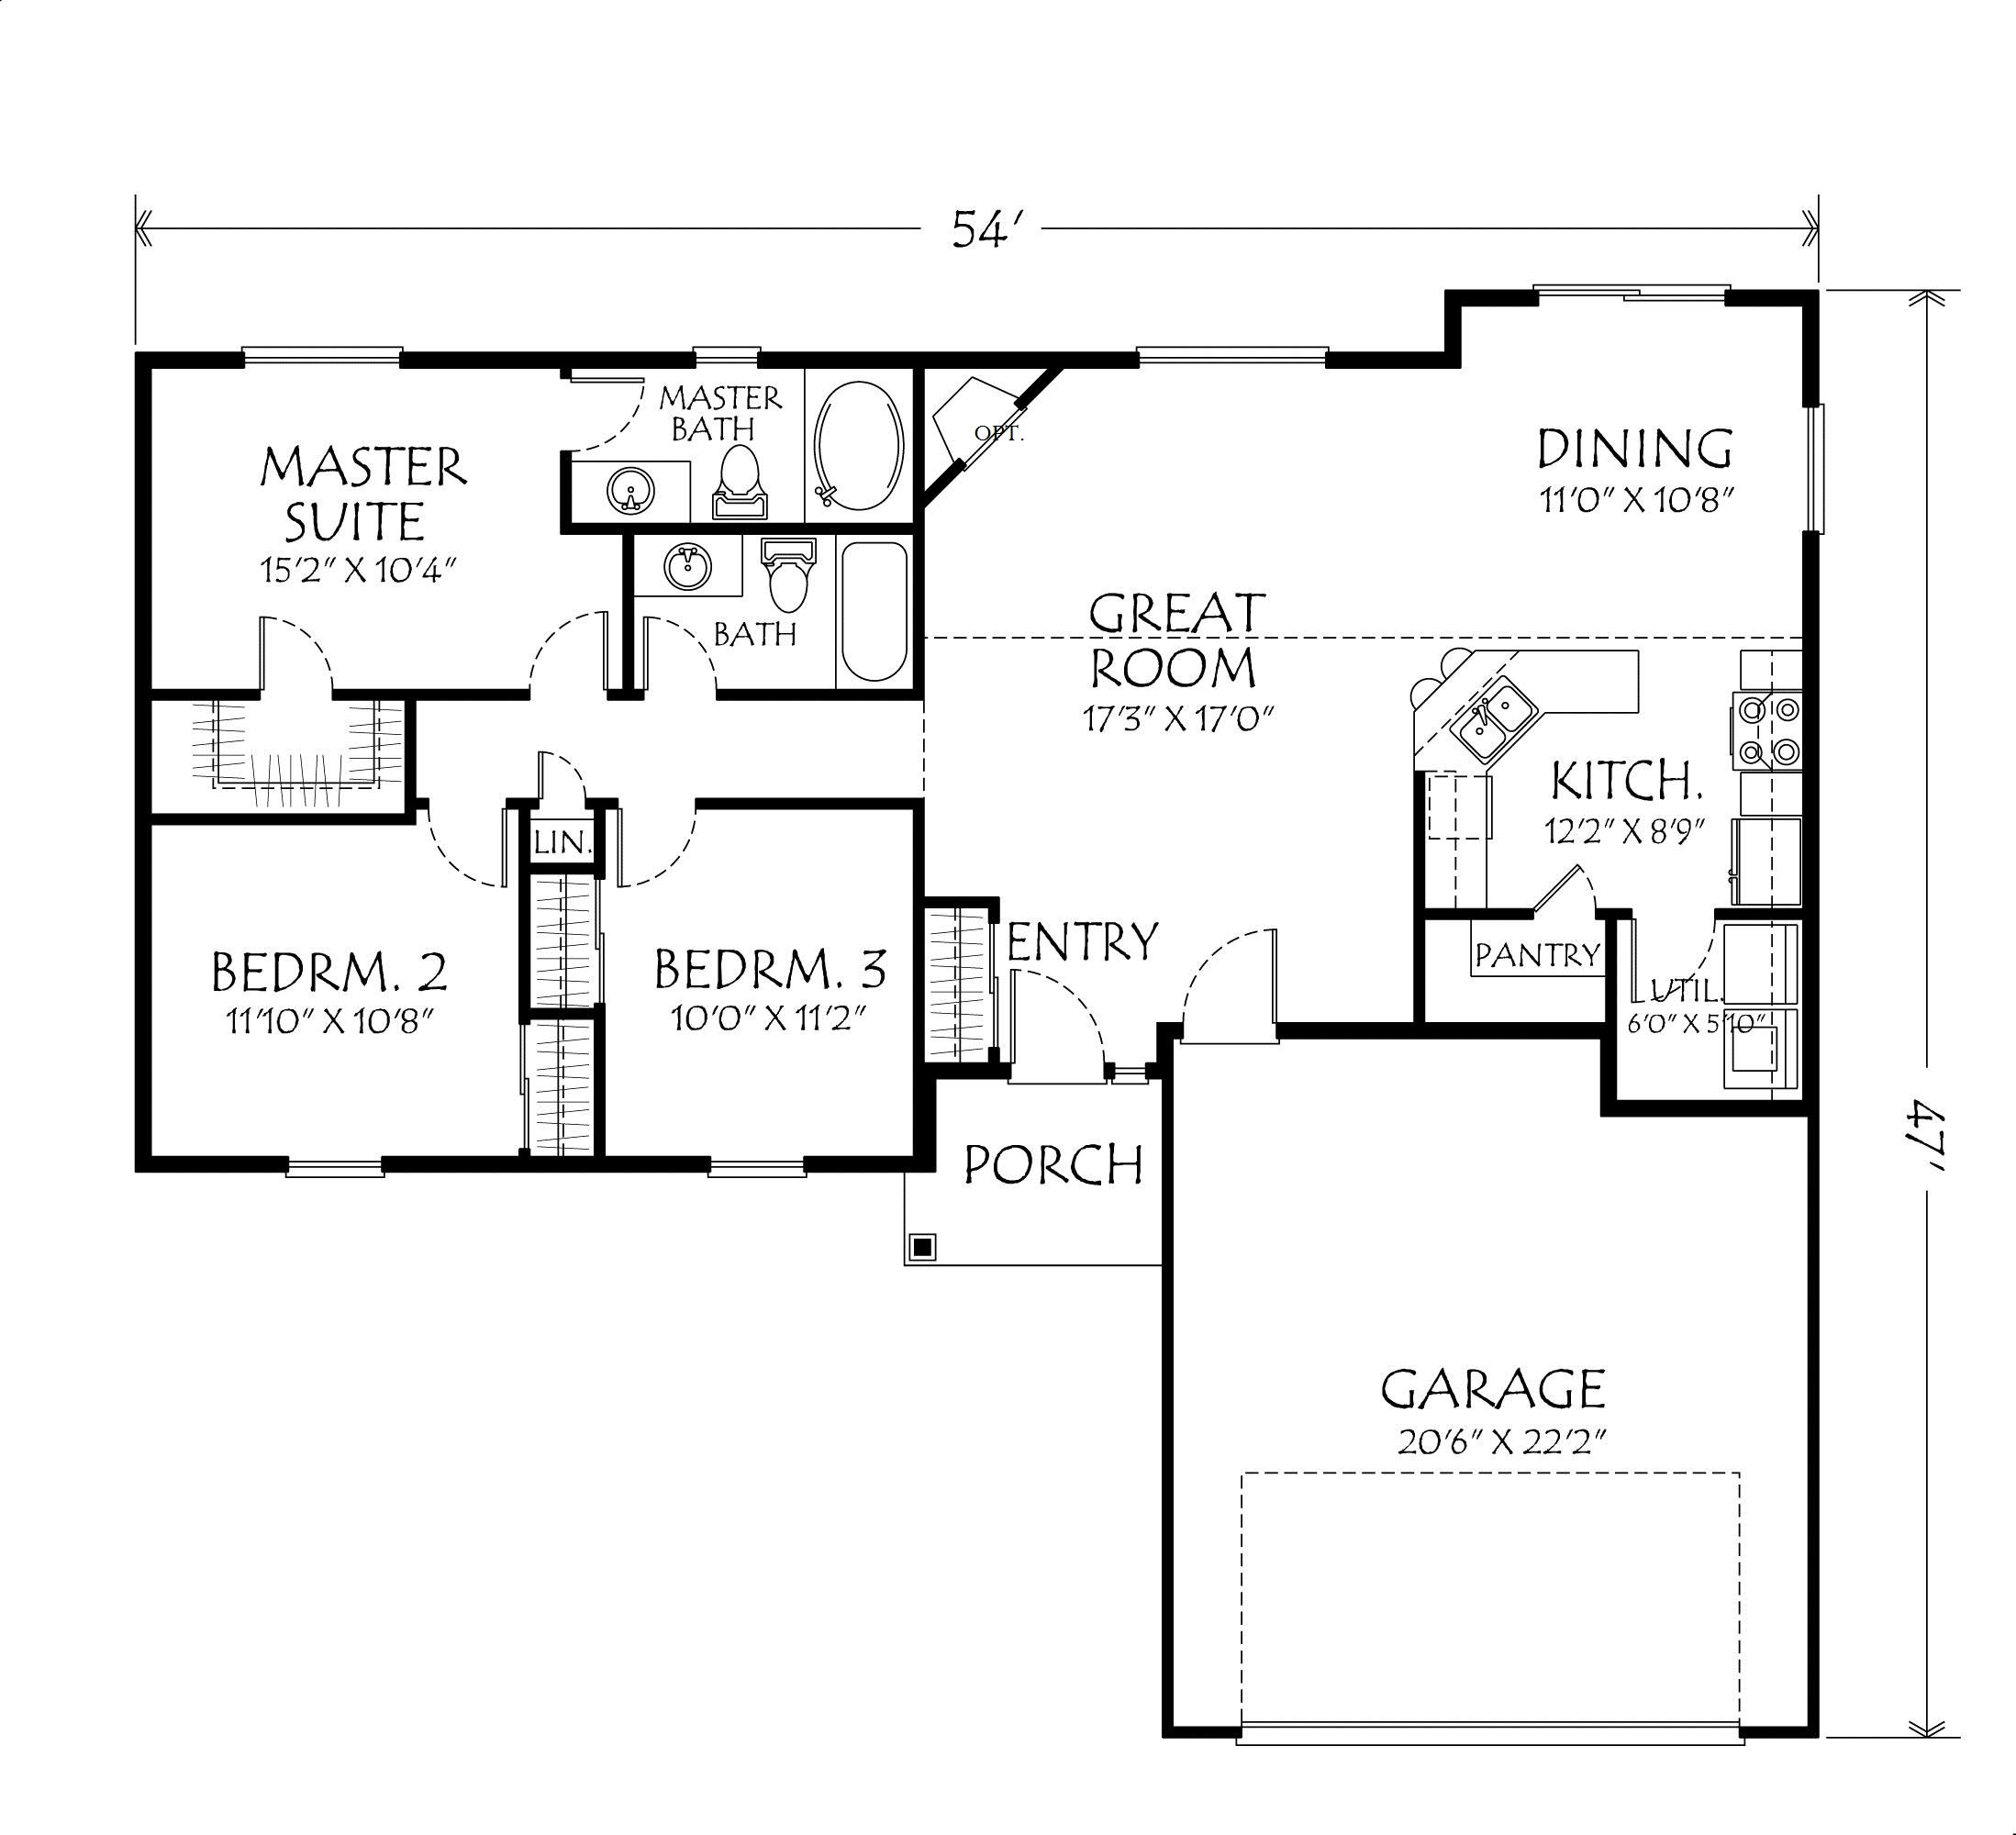 Single Story Open Floor Plans   single story plan 3 bedrooms 2. Single Story Open Floor Plans   single story plan 3 bedrooms 2